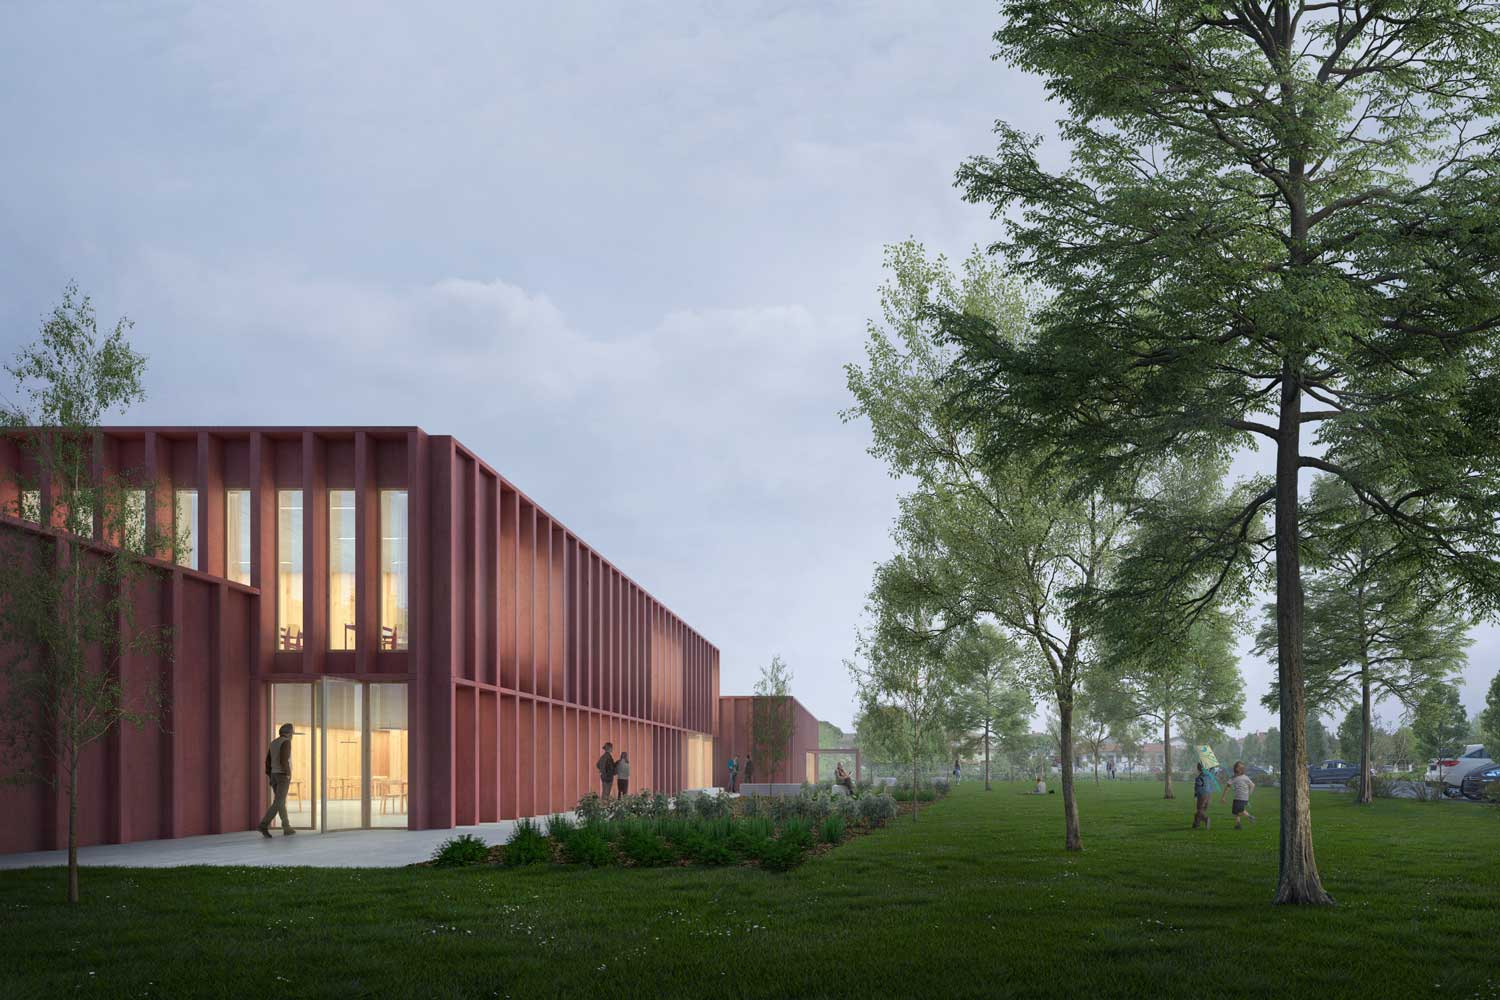 First prize in the competition for the extension and reconstruction of Trojska school in Prague, Czech Republic